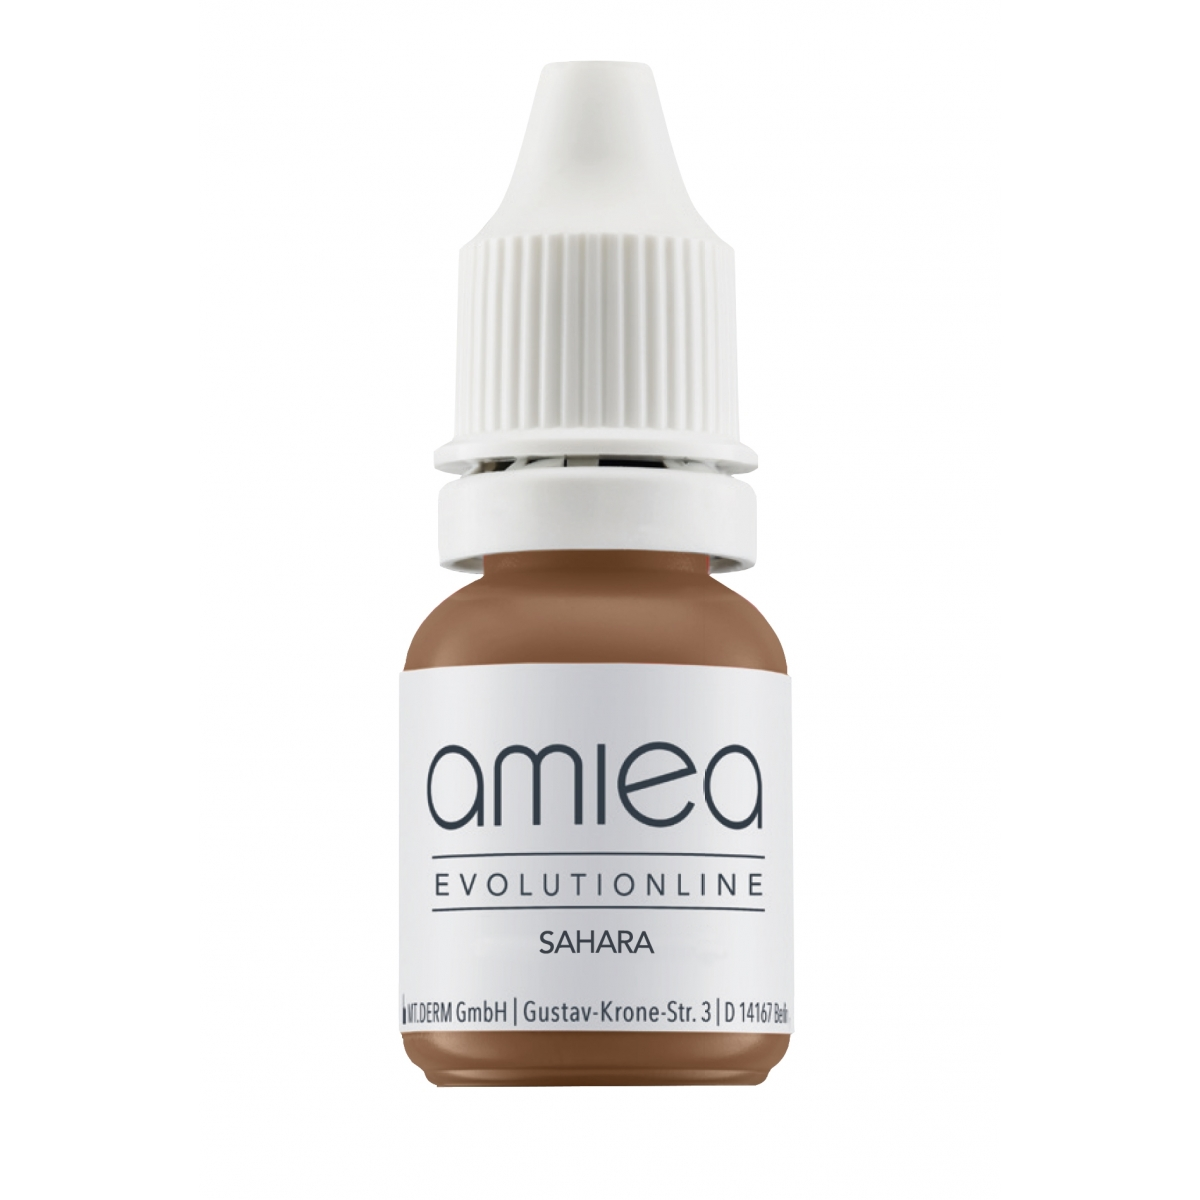 Evolutionline (5 ml) - PIGMENTS AMIEA EVOLUTIONLINE SAHARA, 5 ml